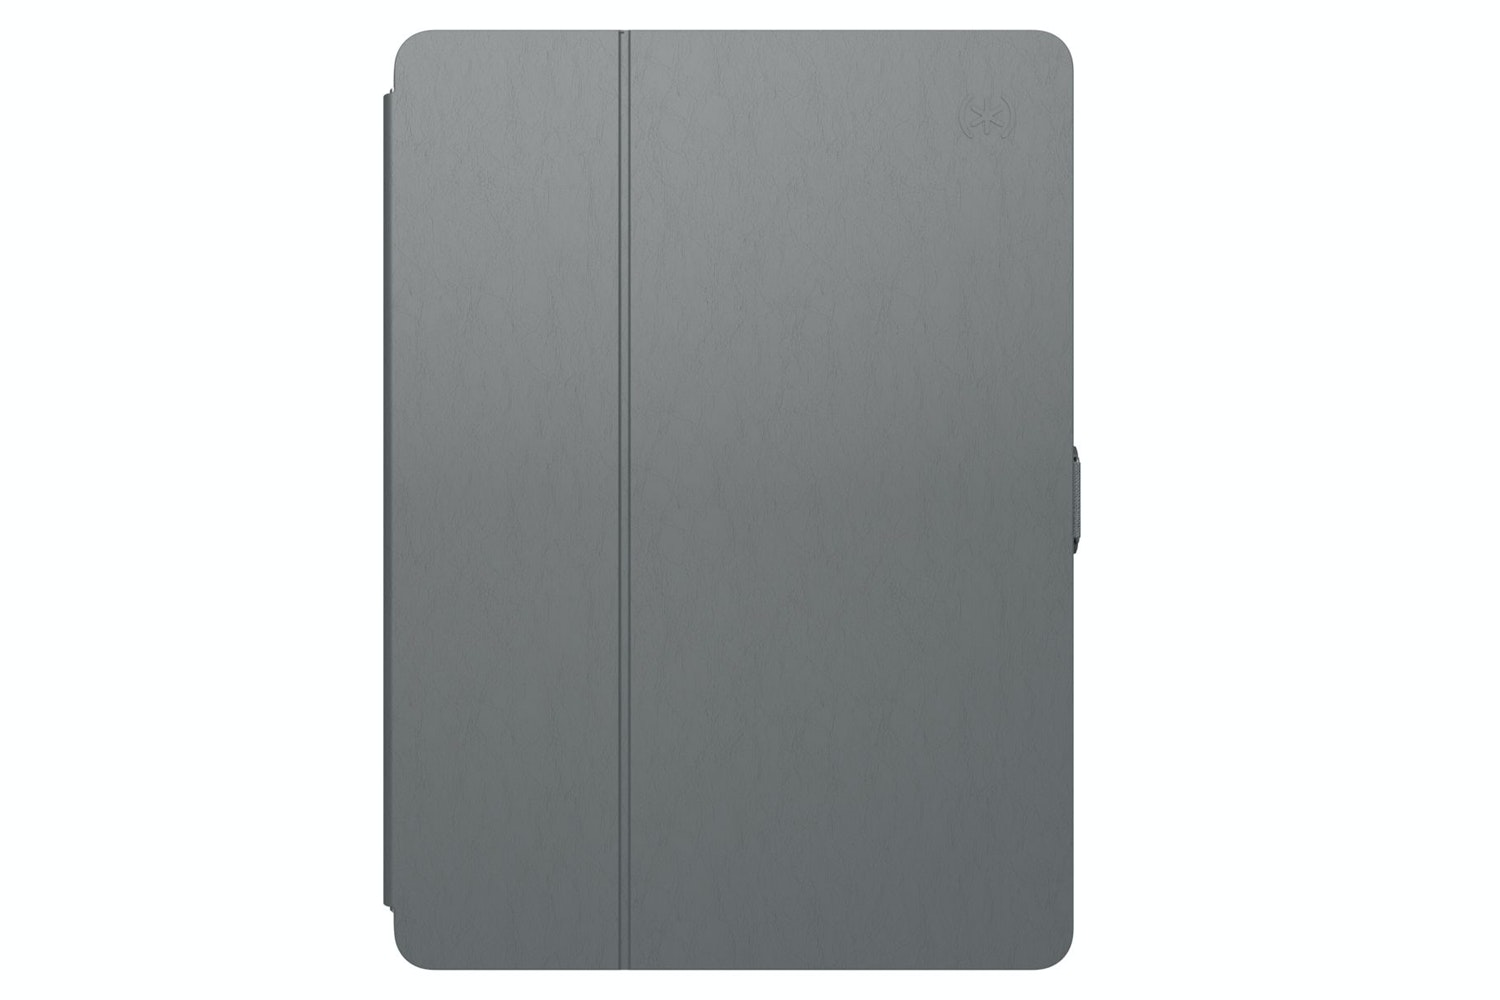 Speck Balance Folio iPad Cases | Grey